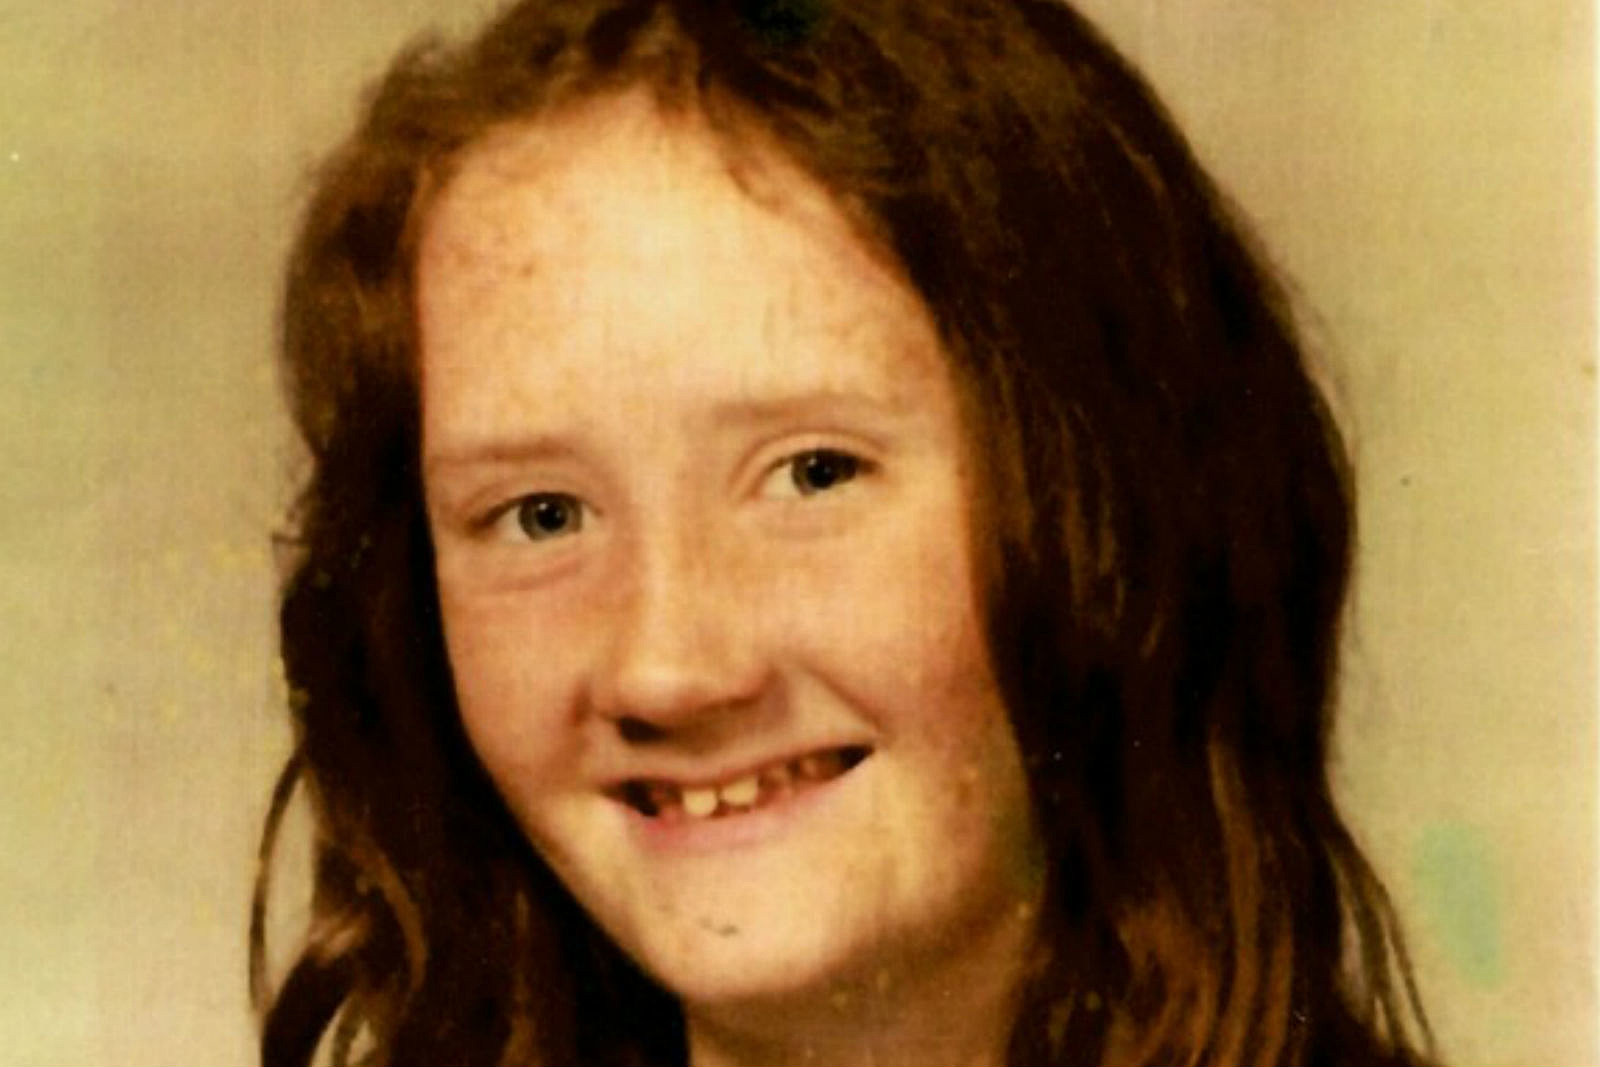 Cold Case Creepy Odd Ransom Call As Teen Vanished 45 Years Ago